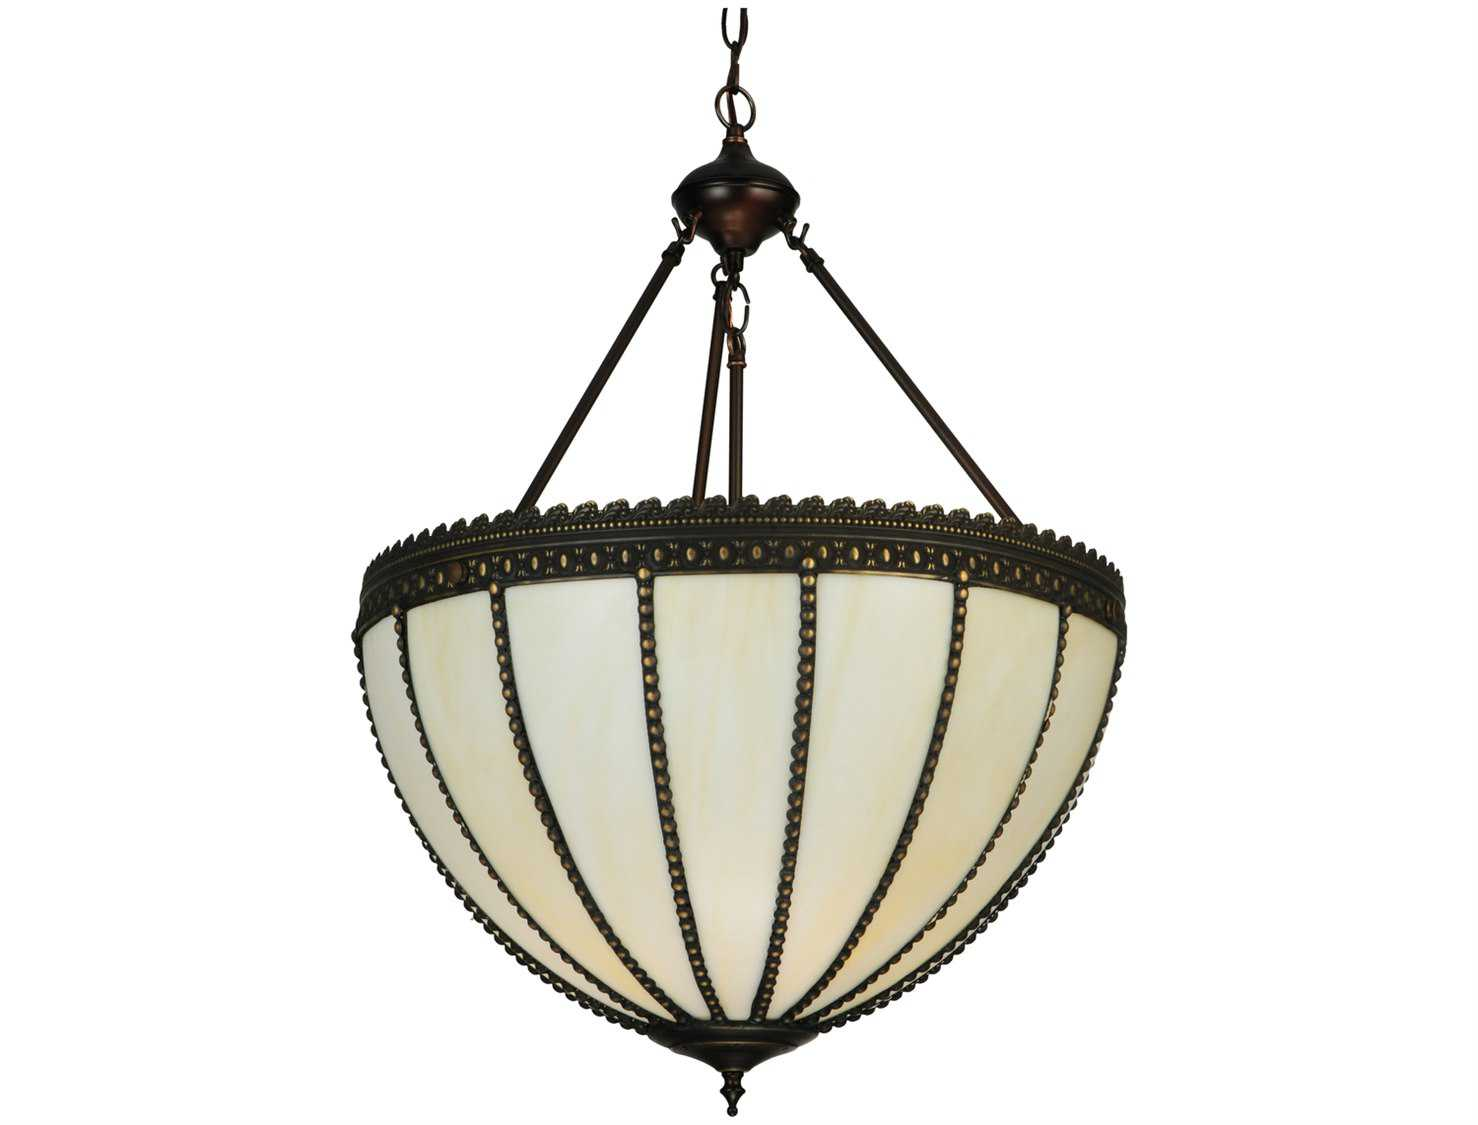 Meyda Tiffany Gothic Inverted Three Light Pendant Light